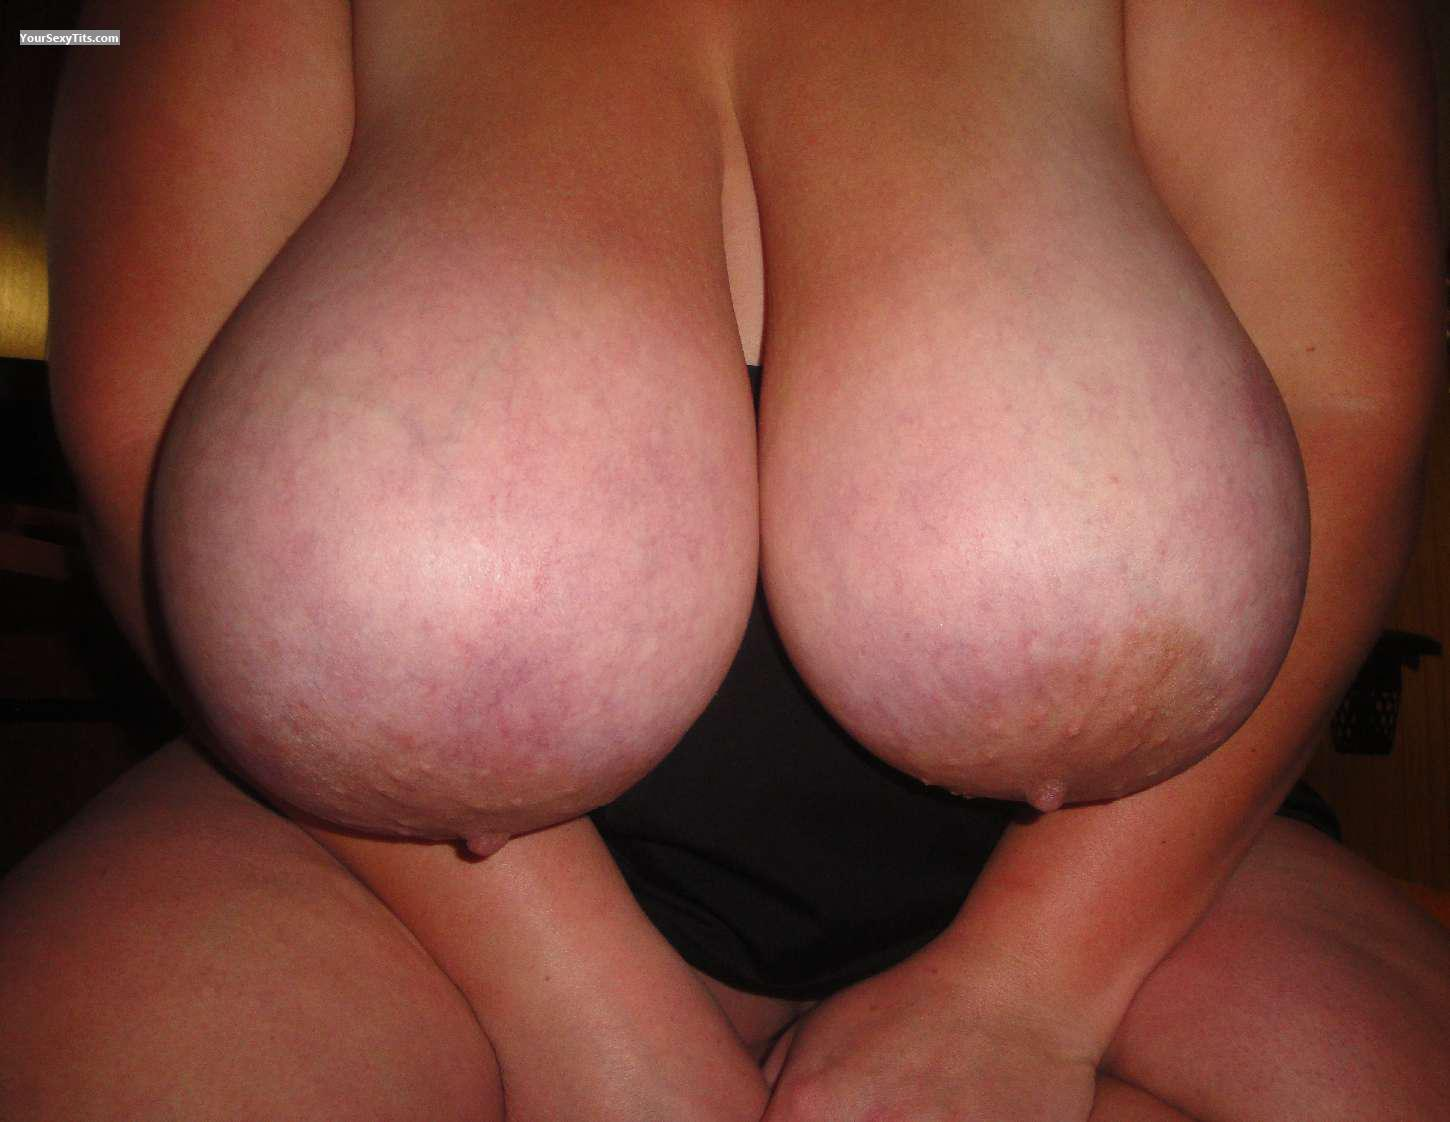 Tit Flash: Wife's Extremely Big Tits - Wifes Big Tits from United States